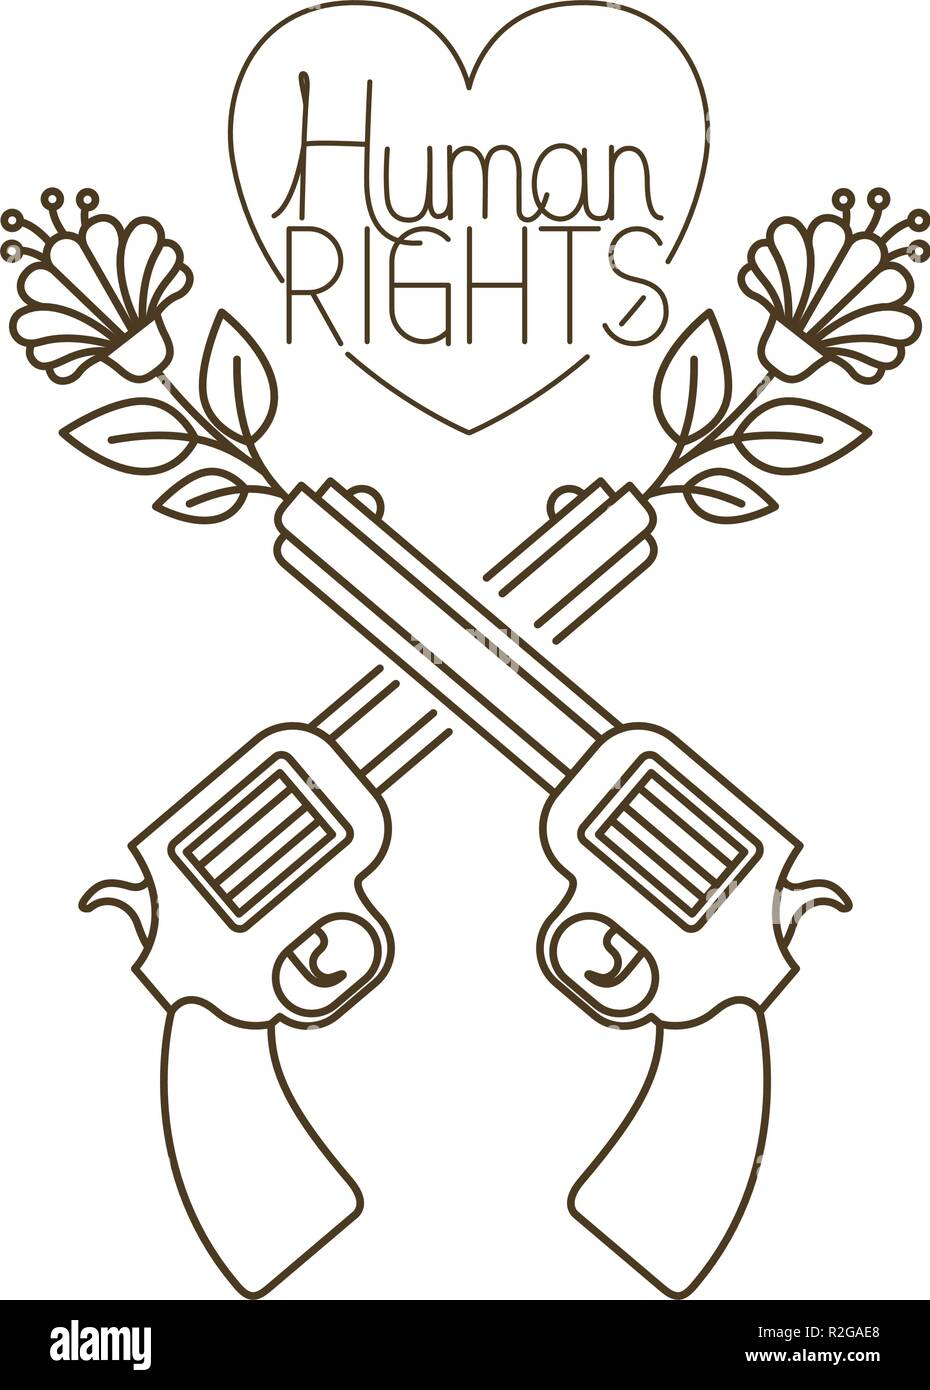 gun rights cut out stock images pictures alamy European Matchlock pistol with flower and human rights in heart with leaves isolated icon stock image